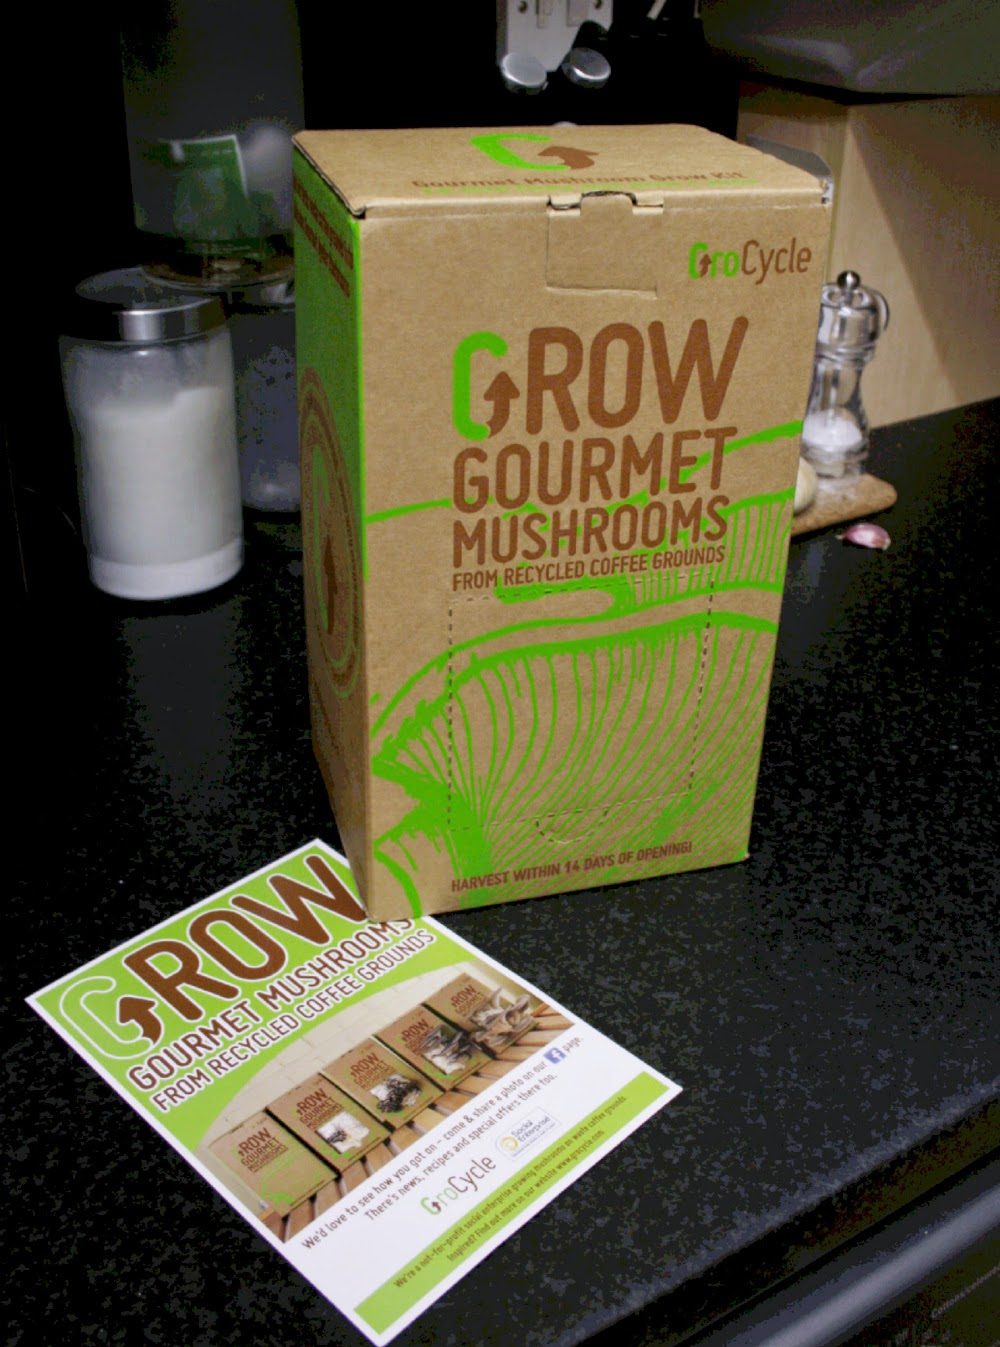 You can order a kit from GroCycle to grow fresh oyster mushrooms in your own home!